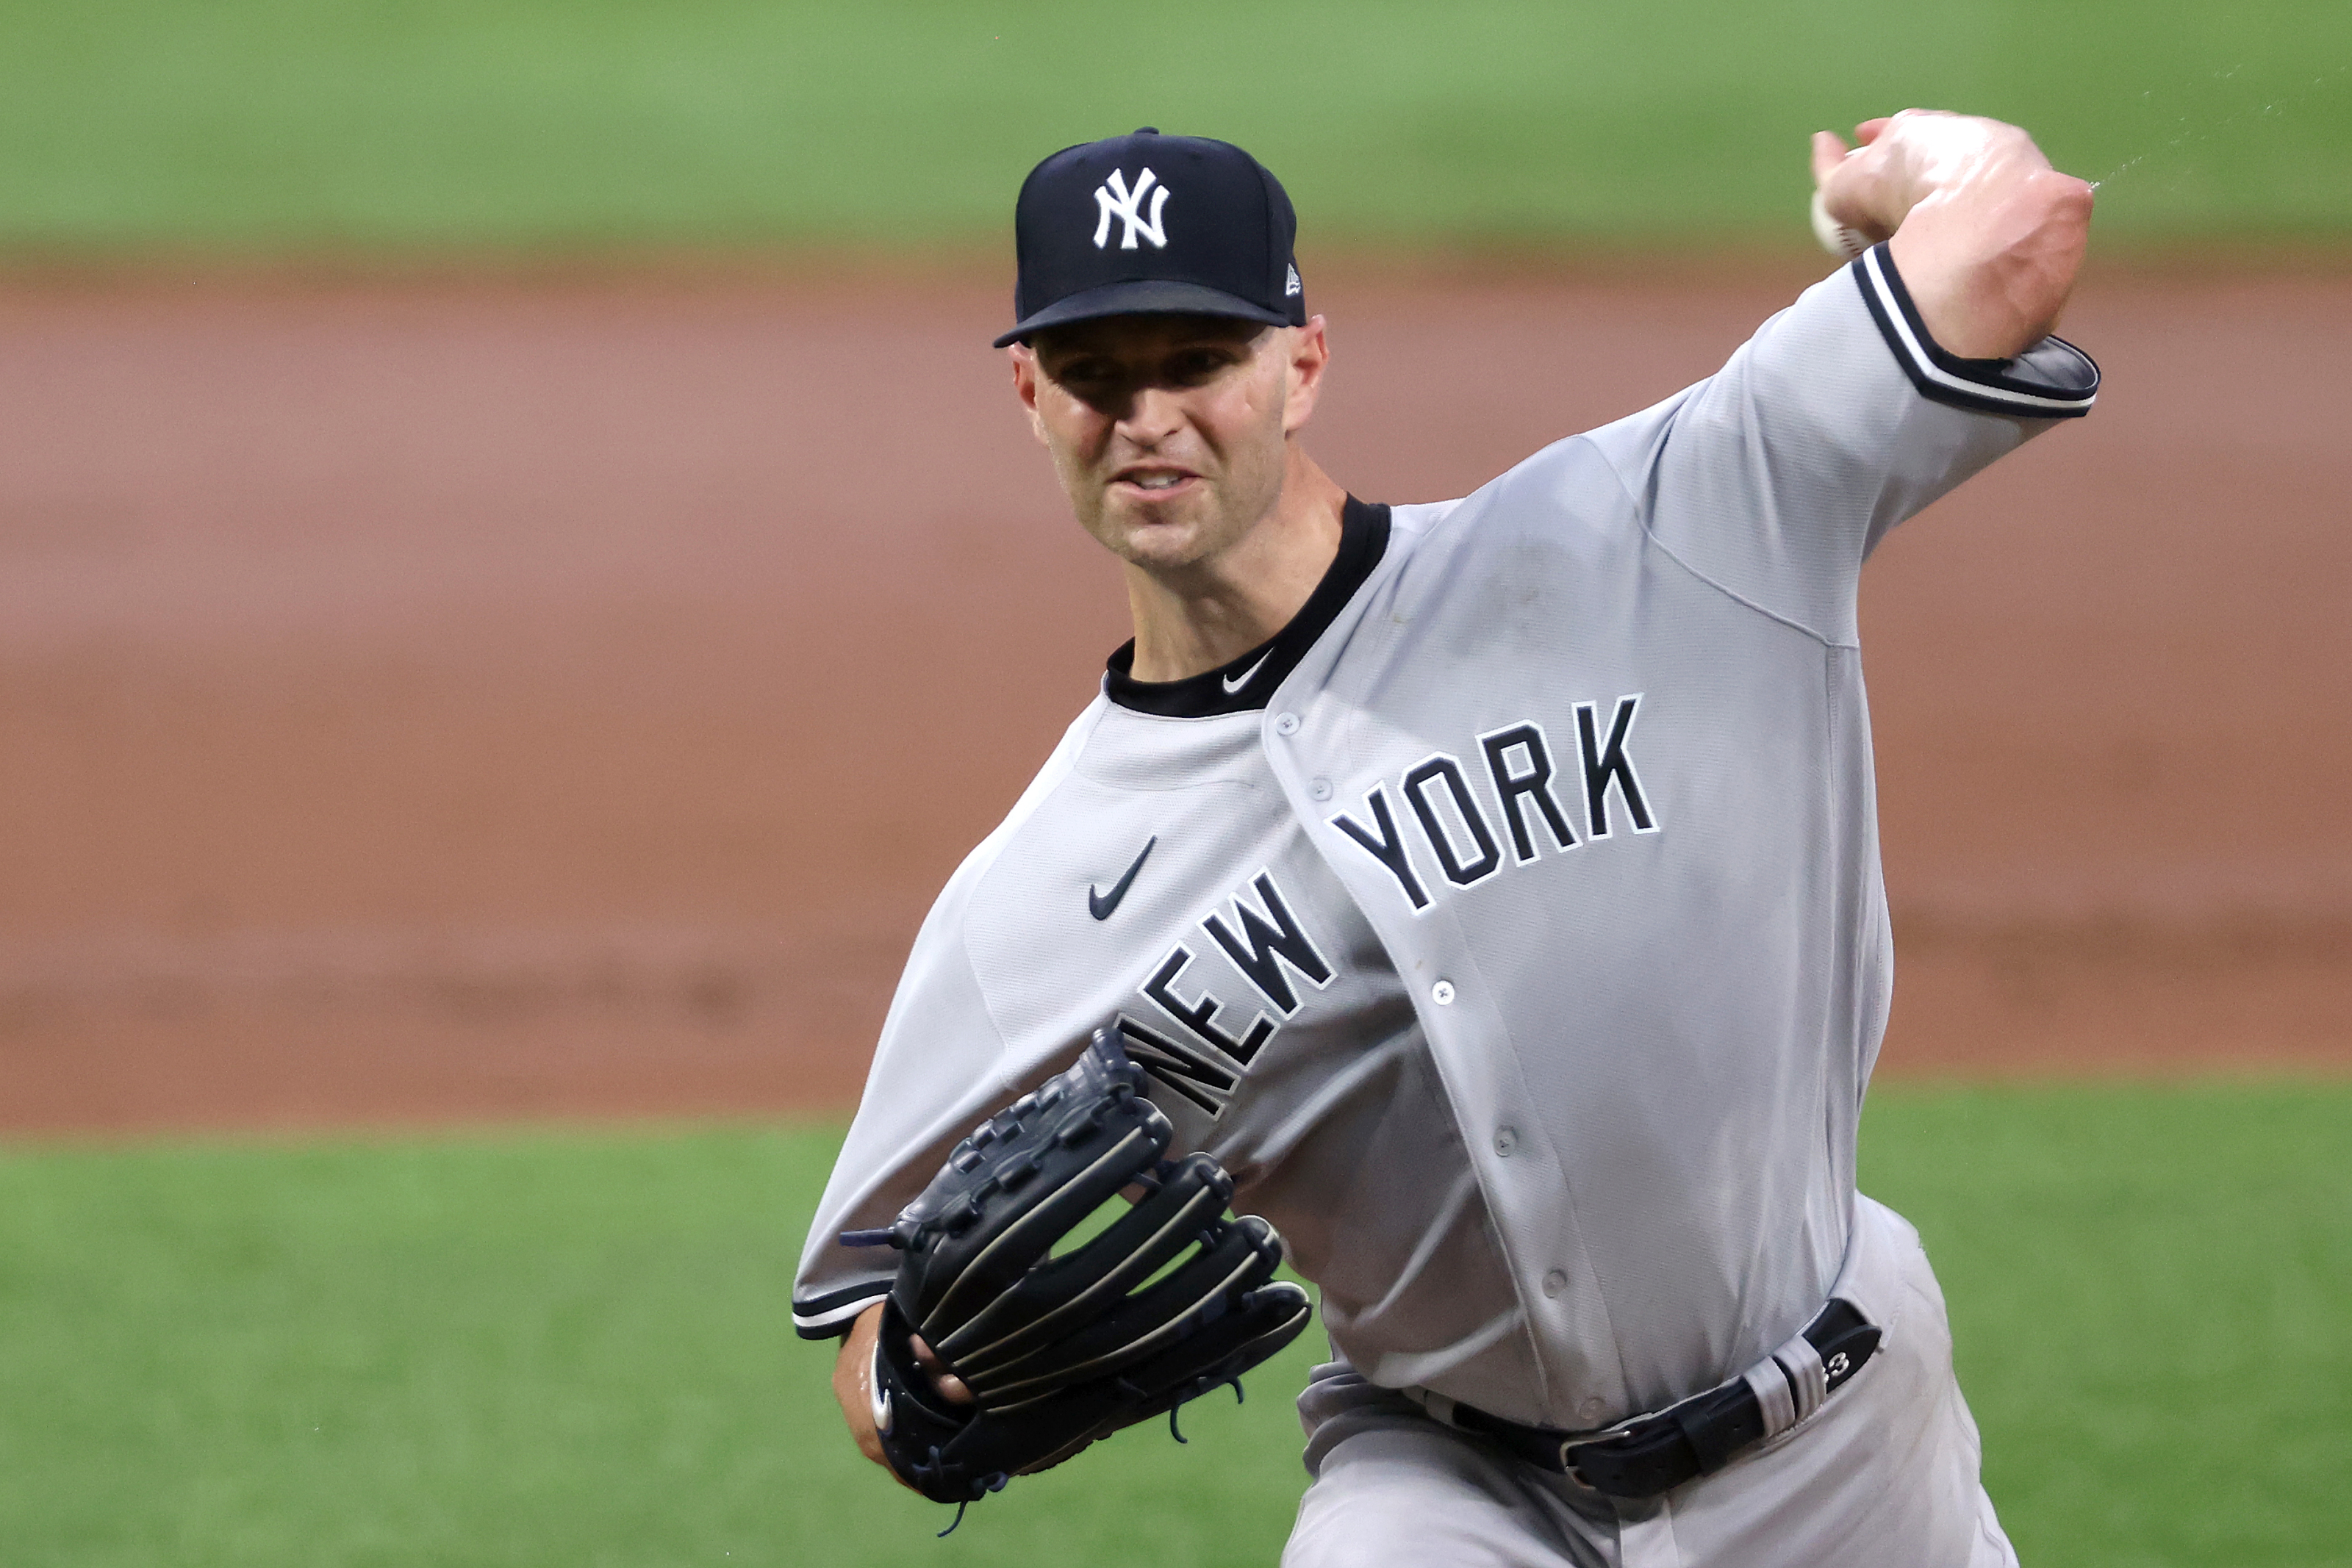 New York Yankees: The worst thing about J.A. Happ